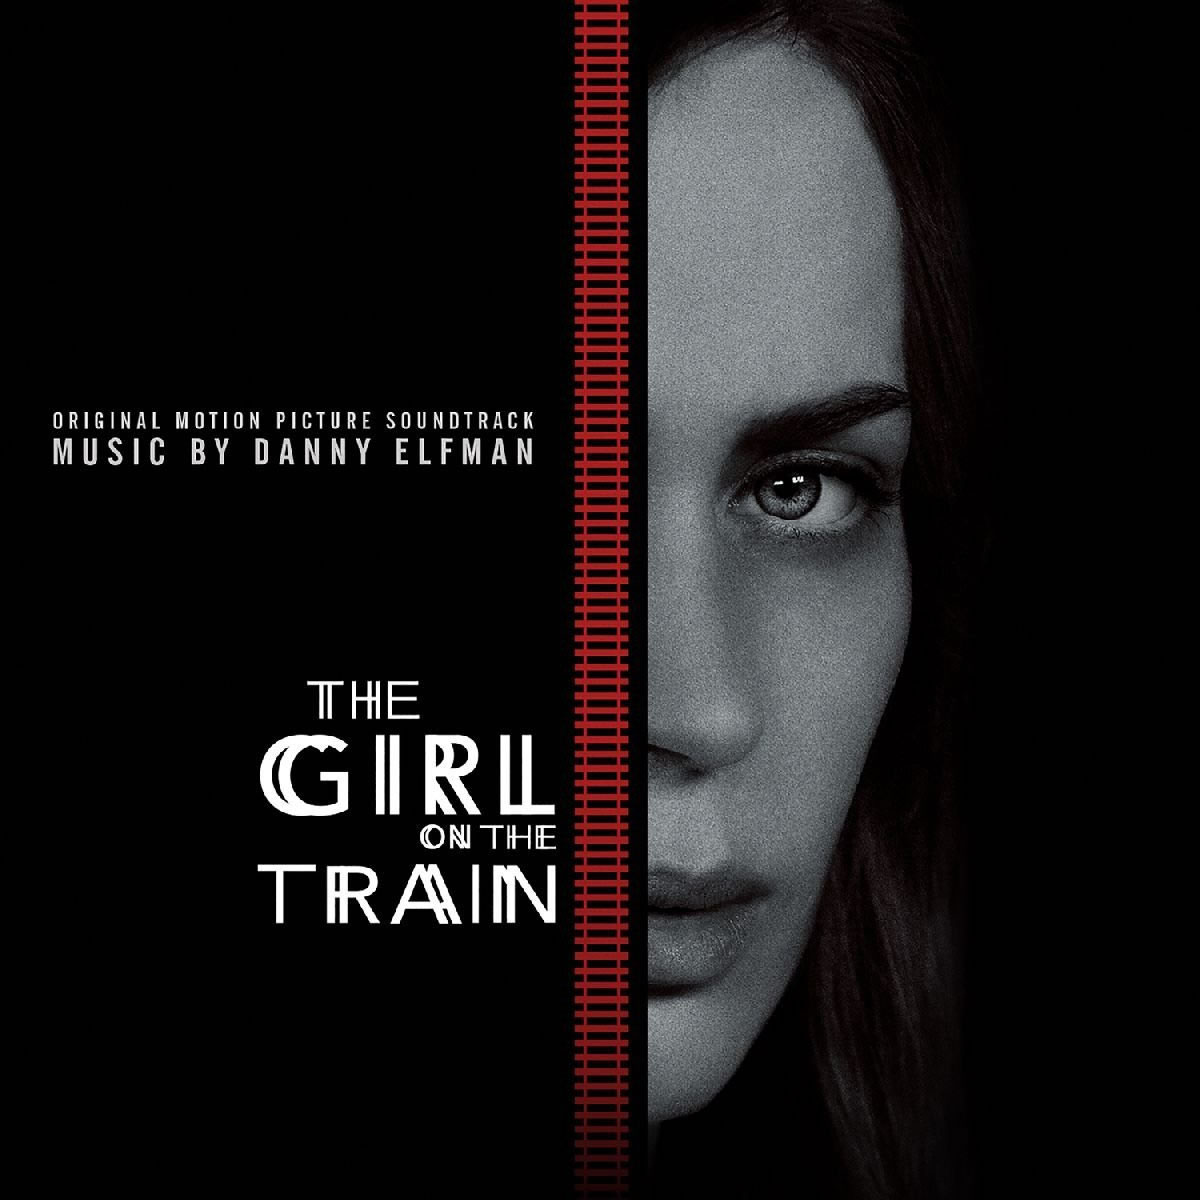 THE GIRL ON THE TRAIN - THE ORIGINAL MOTION PICTURE SOUNDTRACK (AUDIO CD)